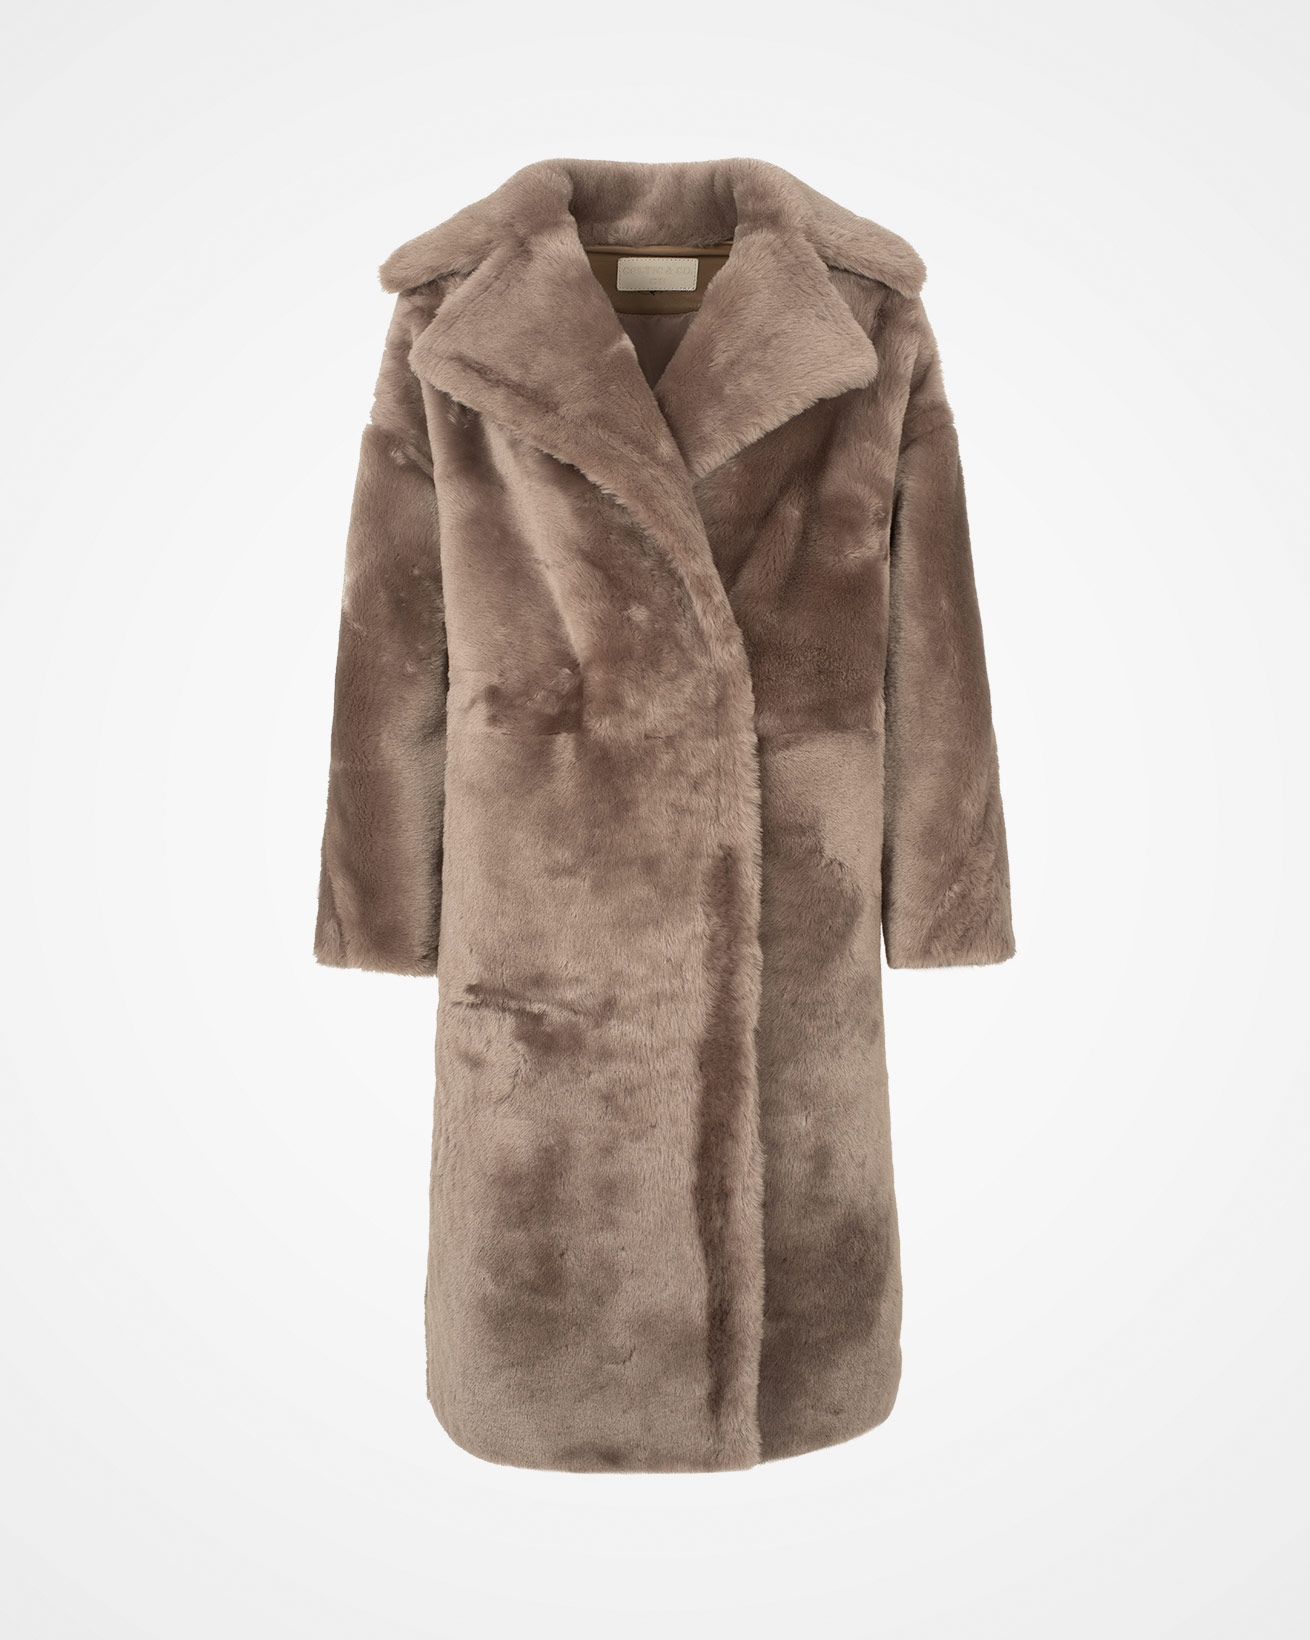 7713_long-sheepskin-overcoat_vole_front.jpg